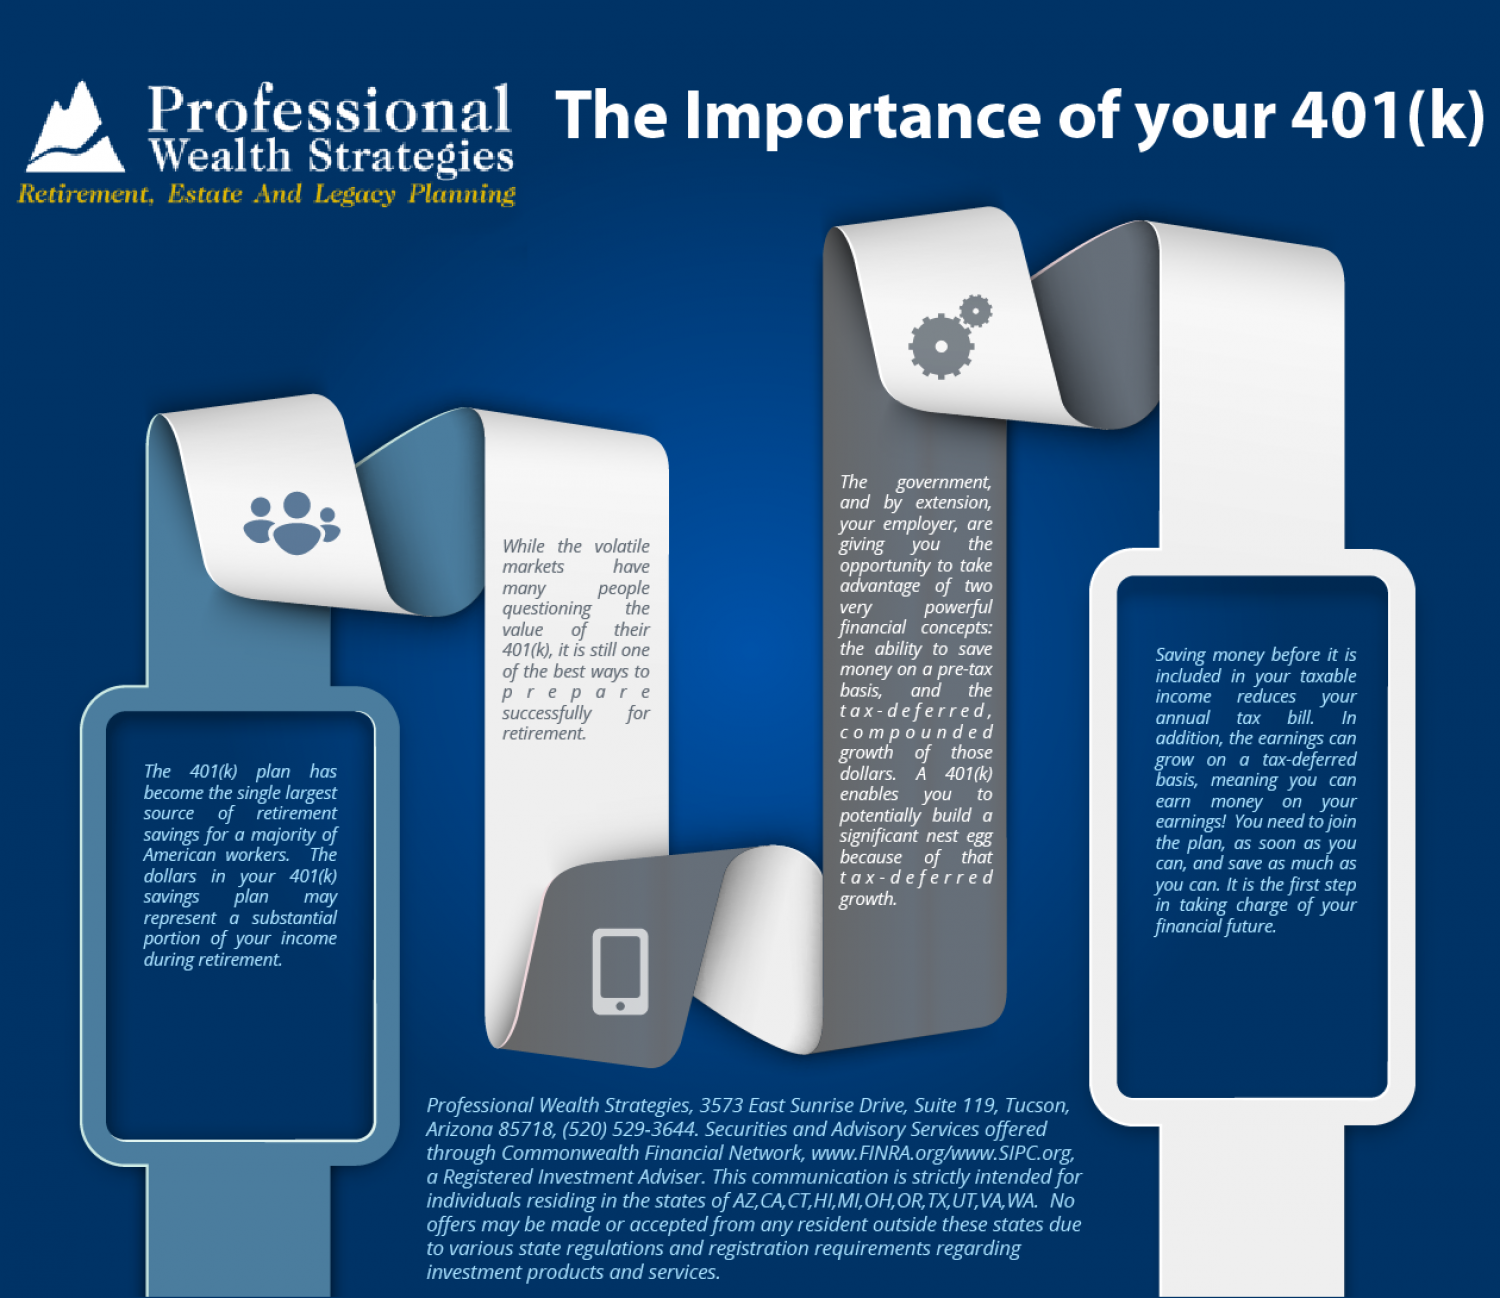 The Importance of your 401(k) Infographic